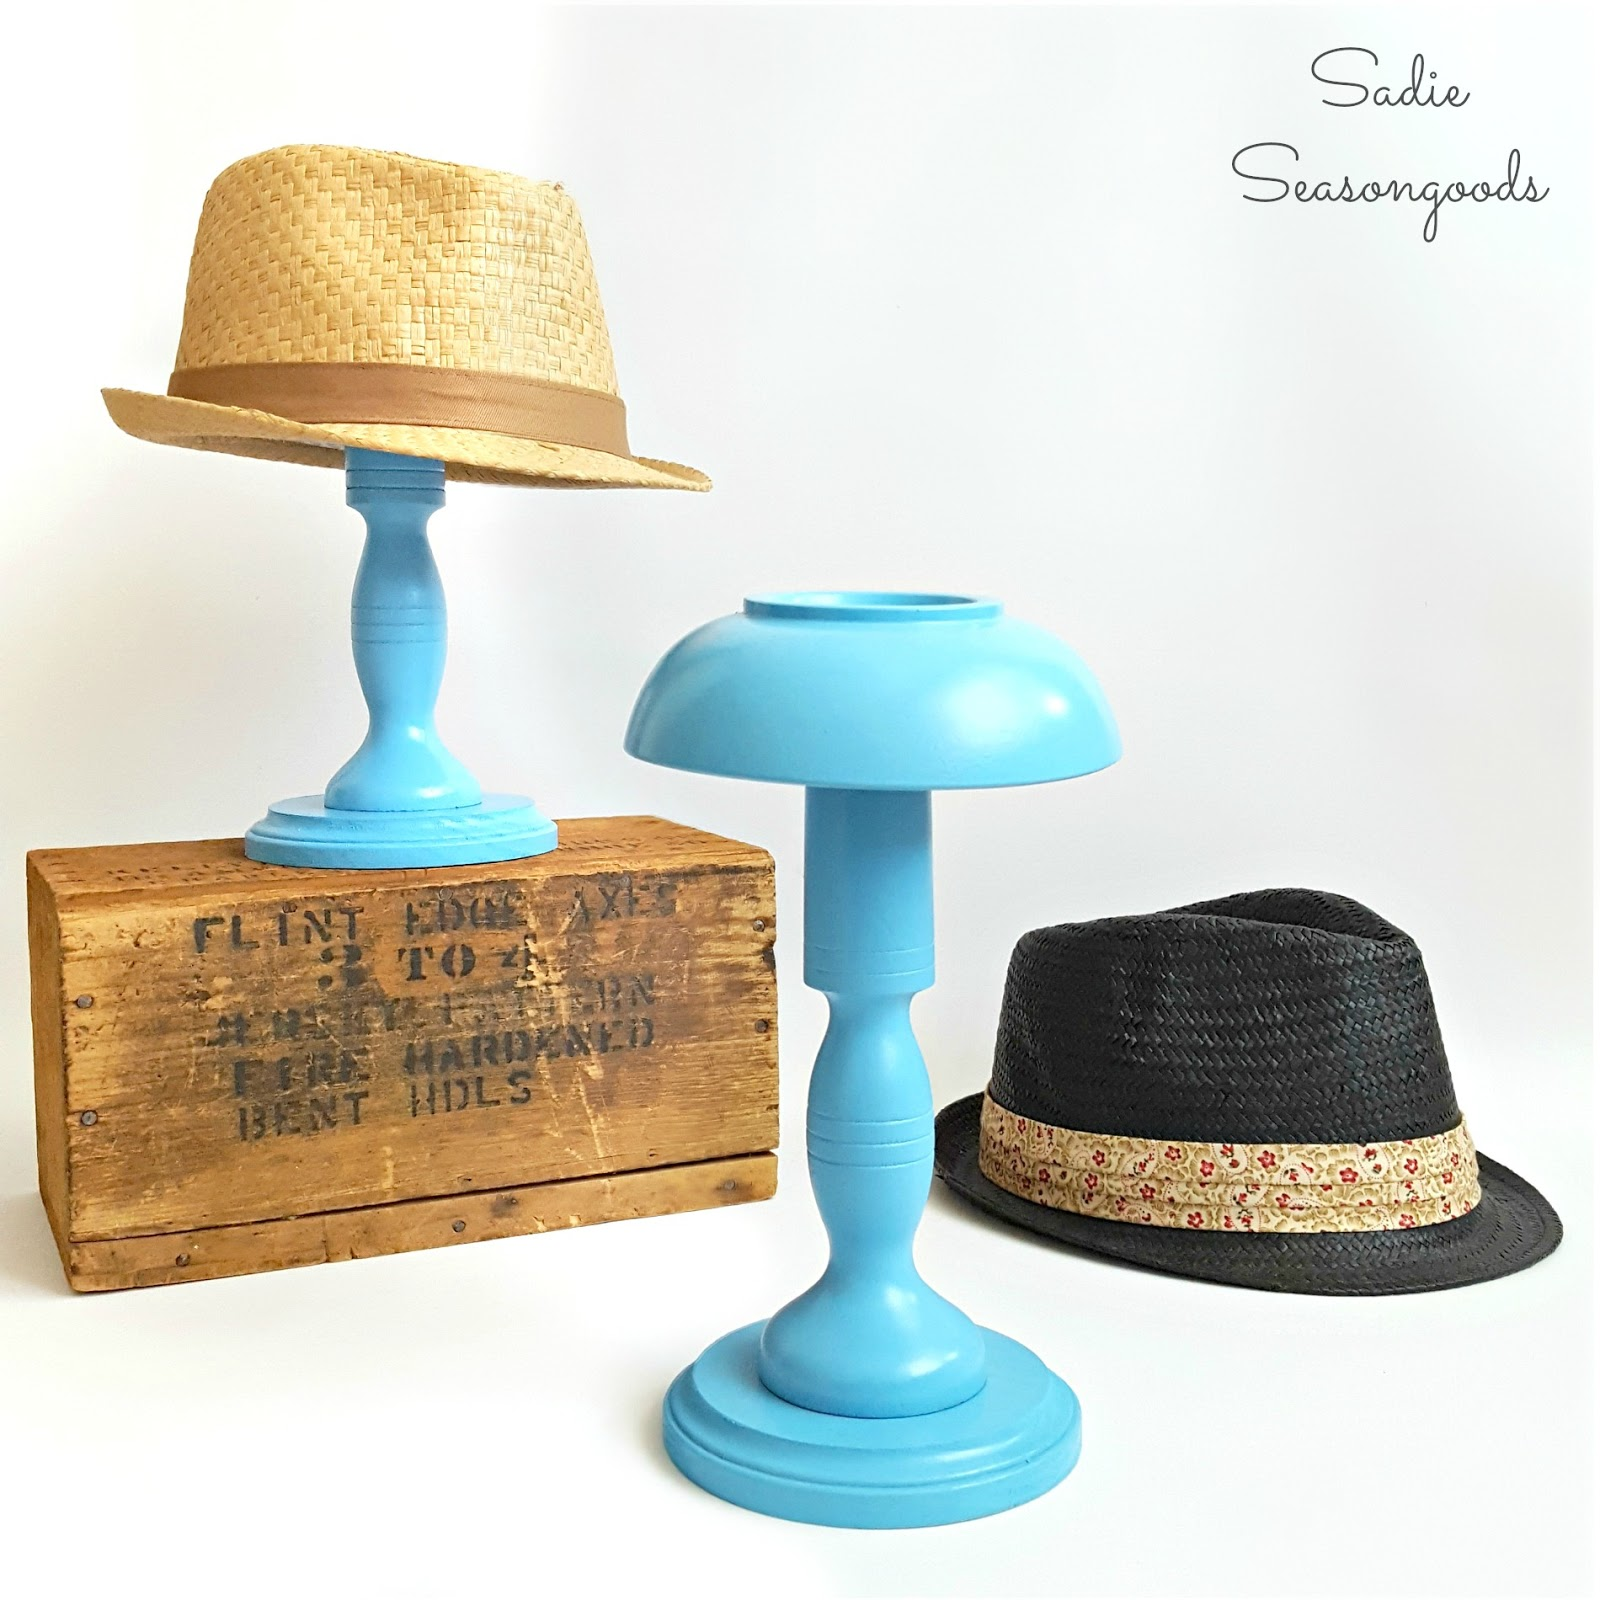 Hat Stand Designs : Homemade and handcrafted no redo it yourself